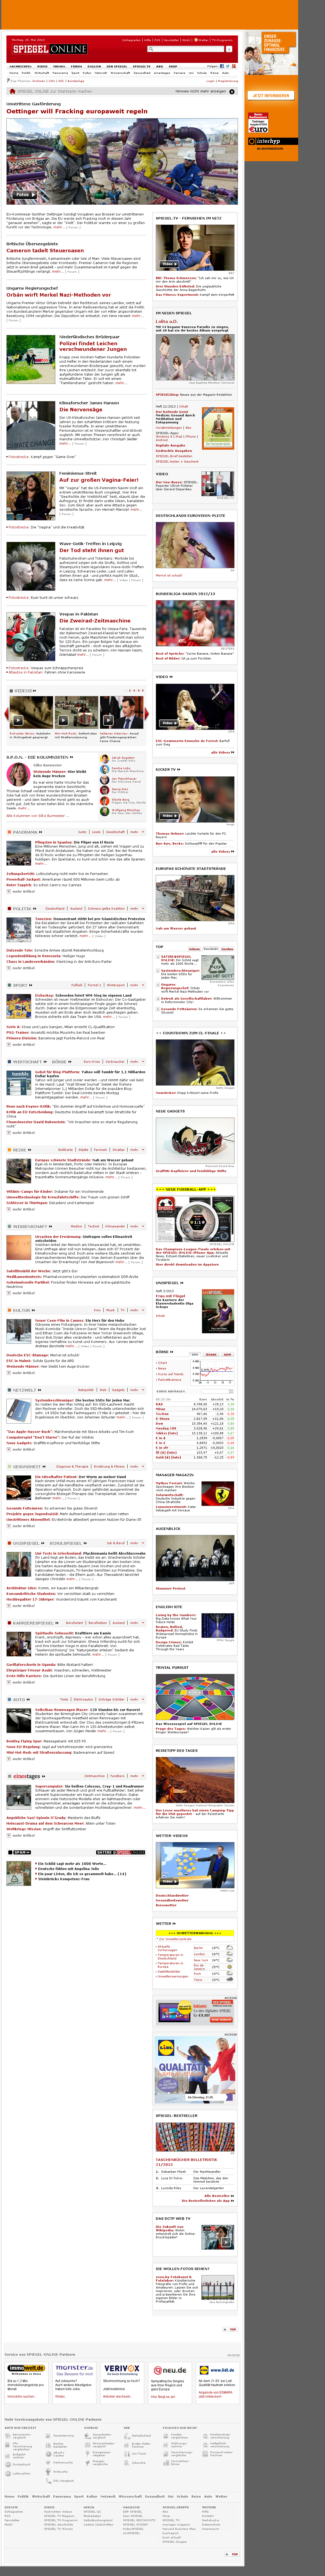 Spiegel Online at Monday May 20, 2013, 6:22 a.m. UTC